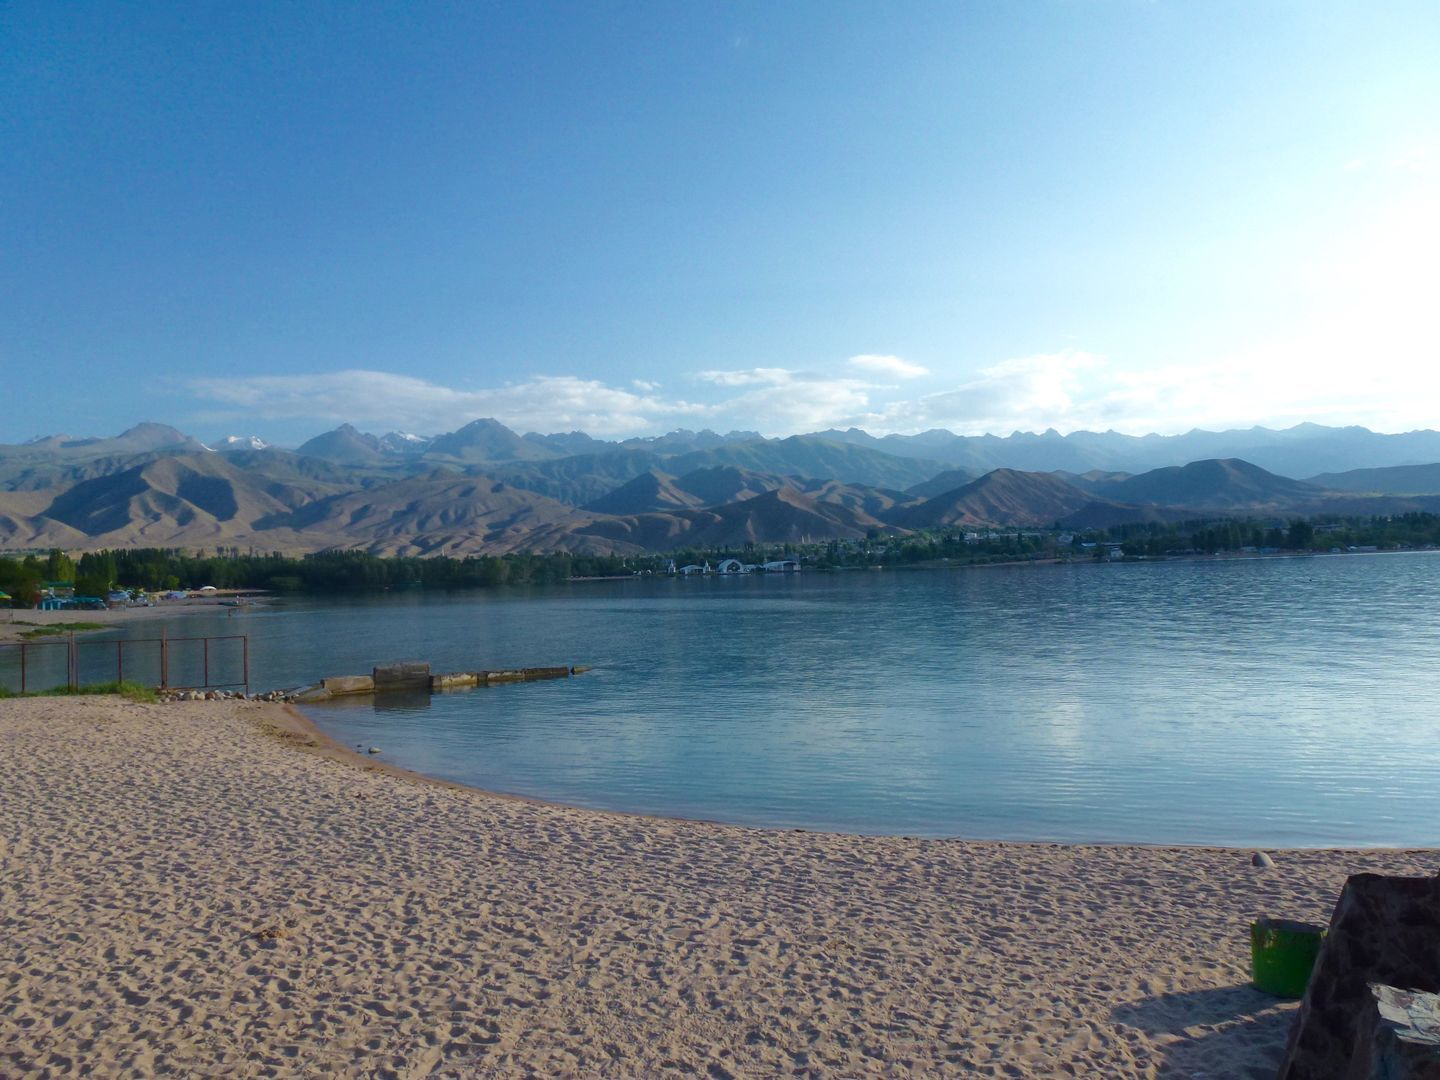 Issyk Kul lake as seen in classic Kyrgyzstan Tour